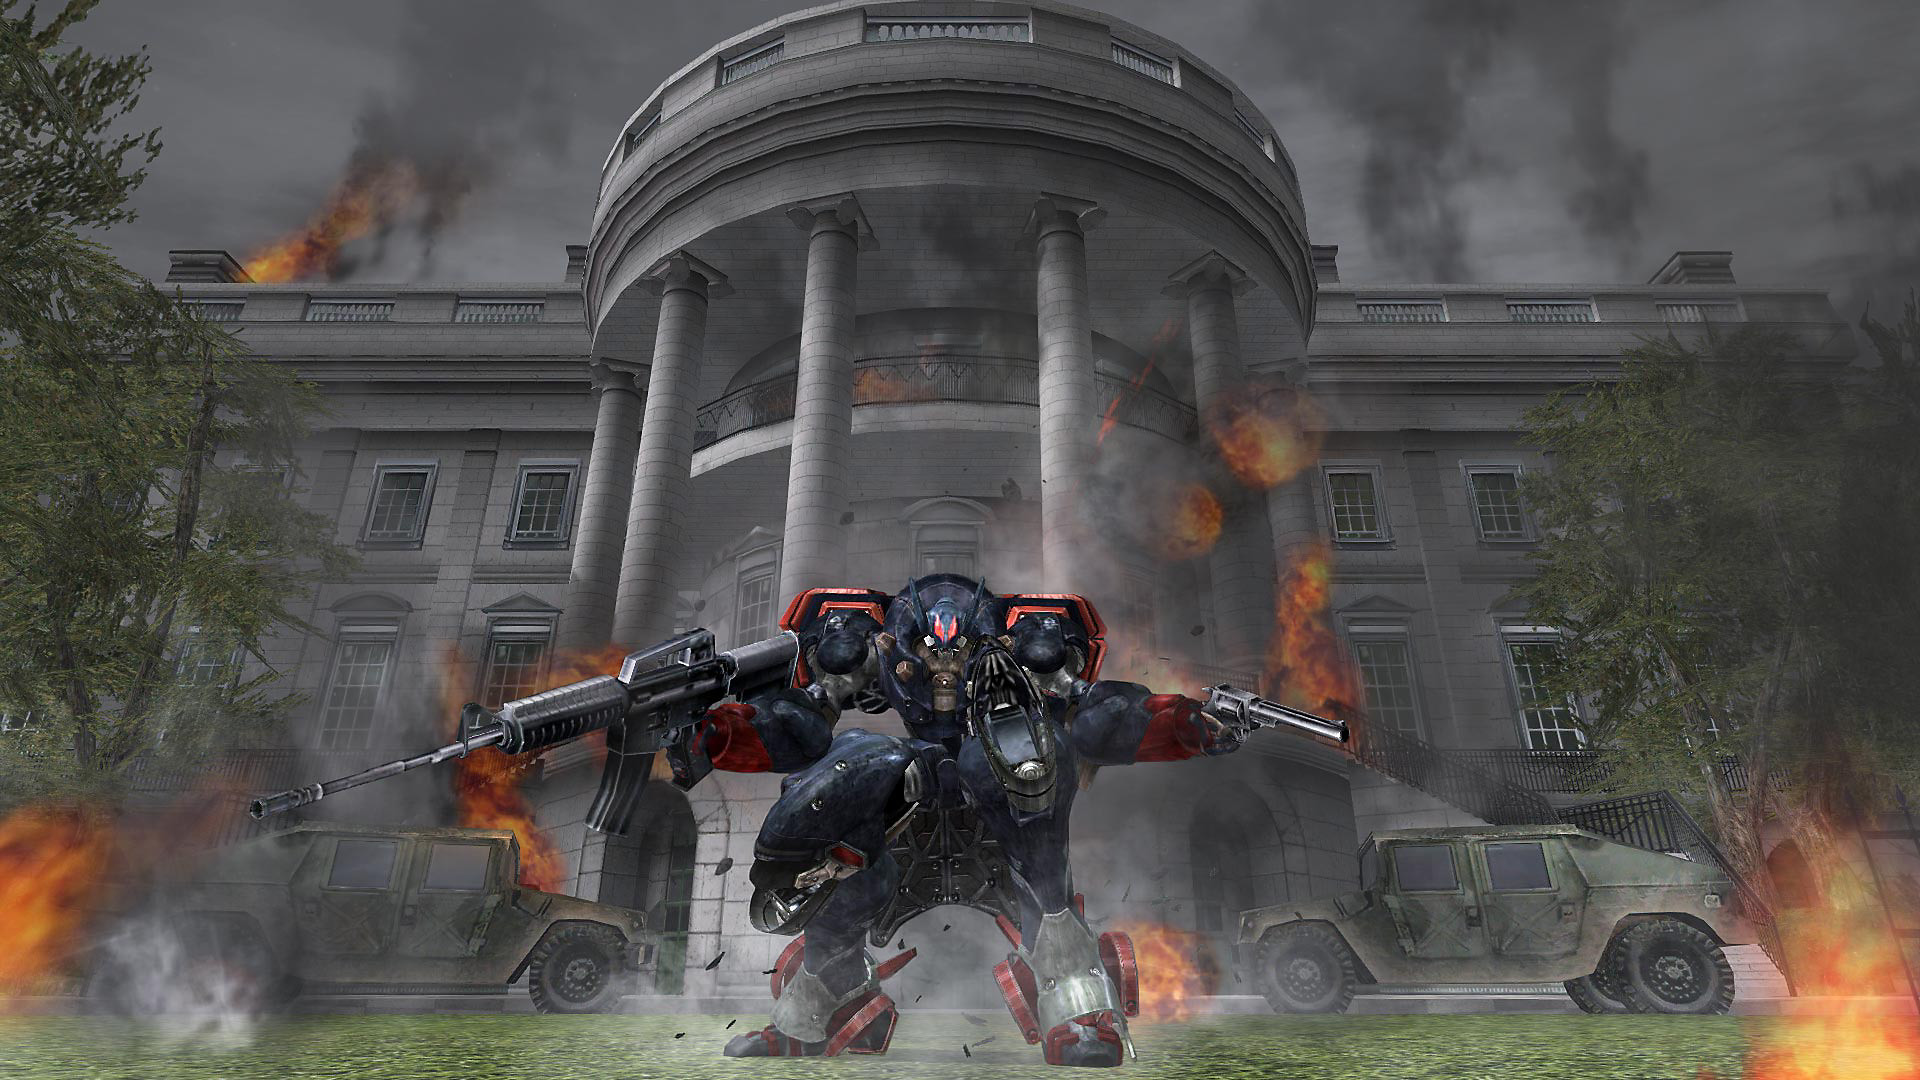 mech in front of the white house